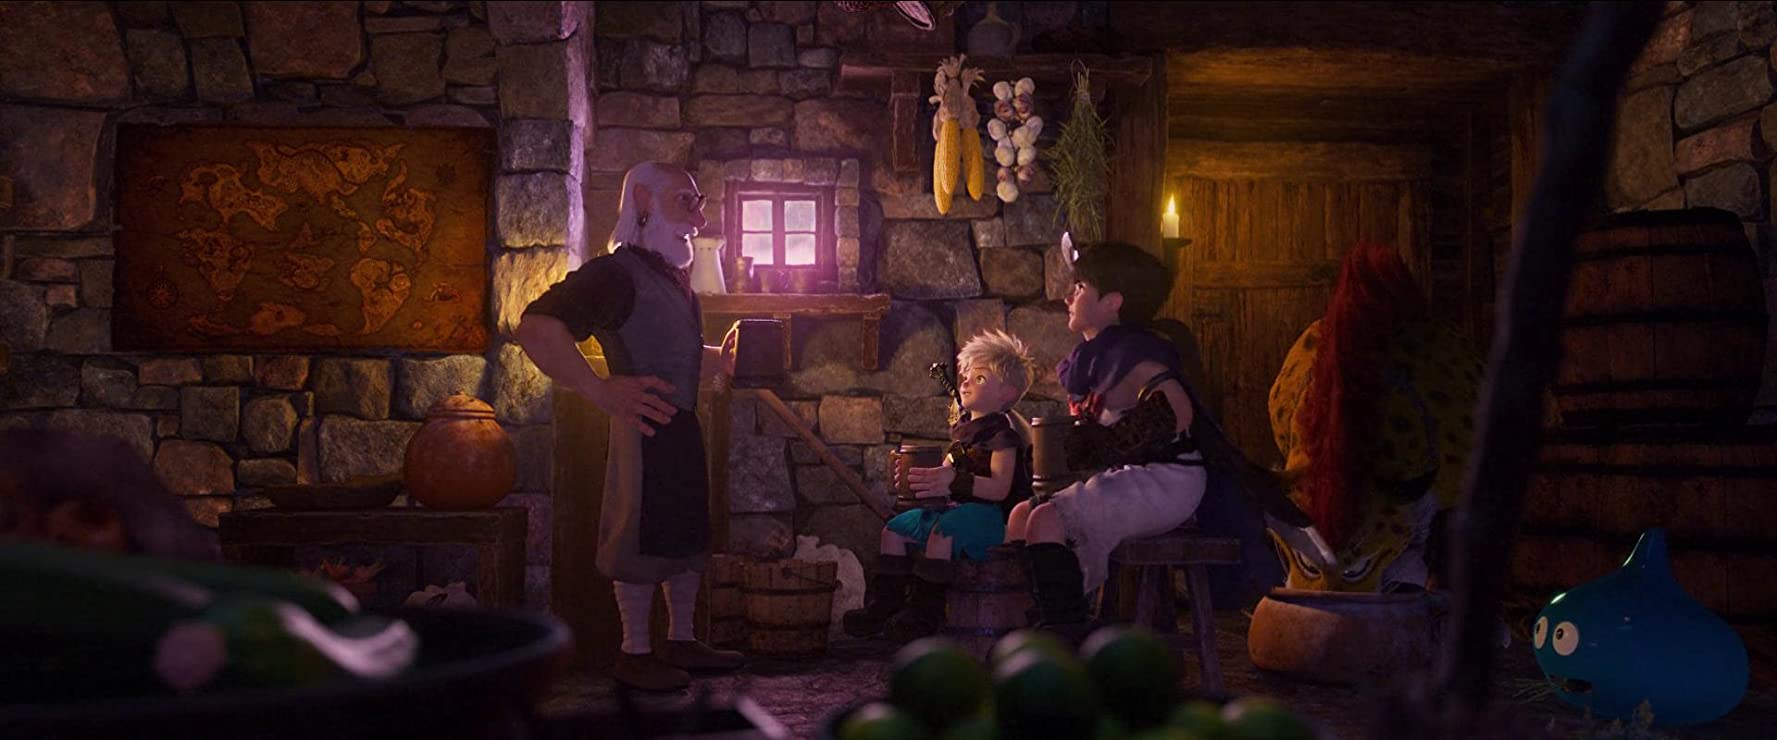 FILM - Dragon Quest: Your Story (2019)